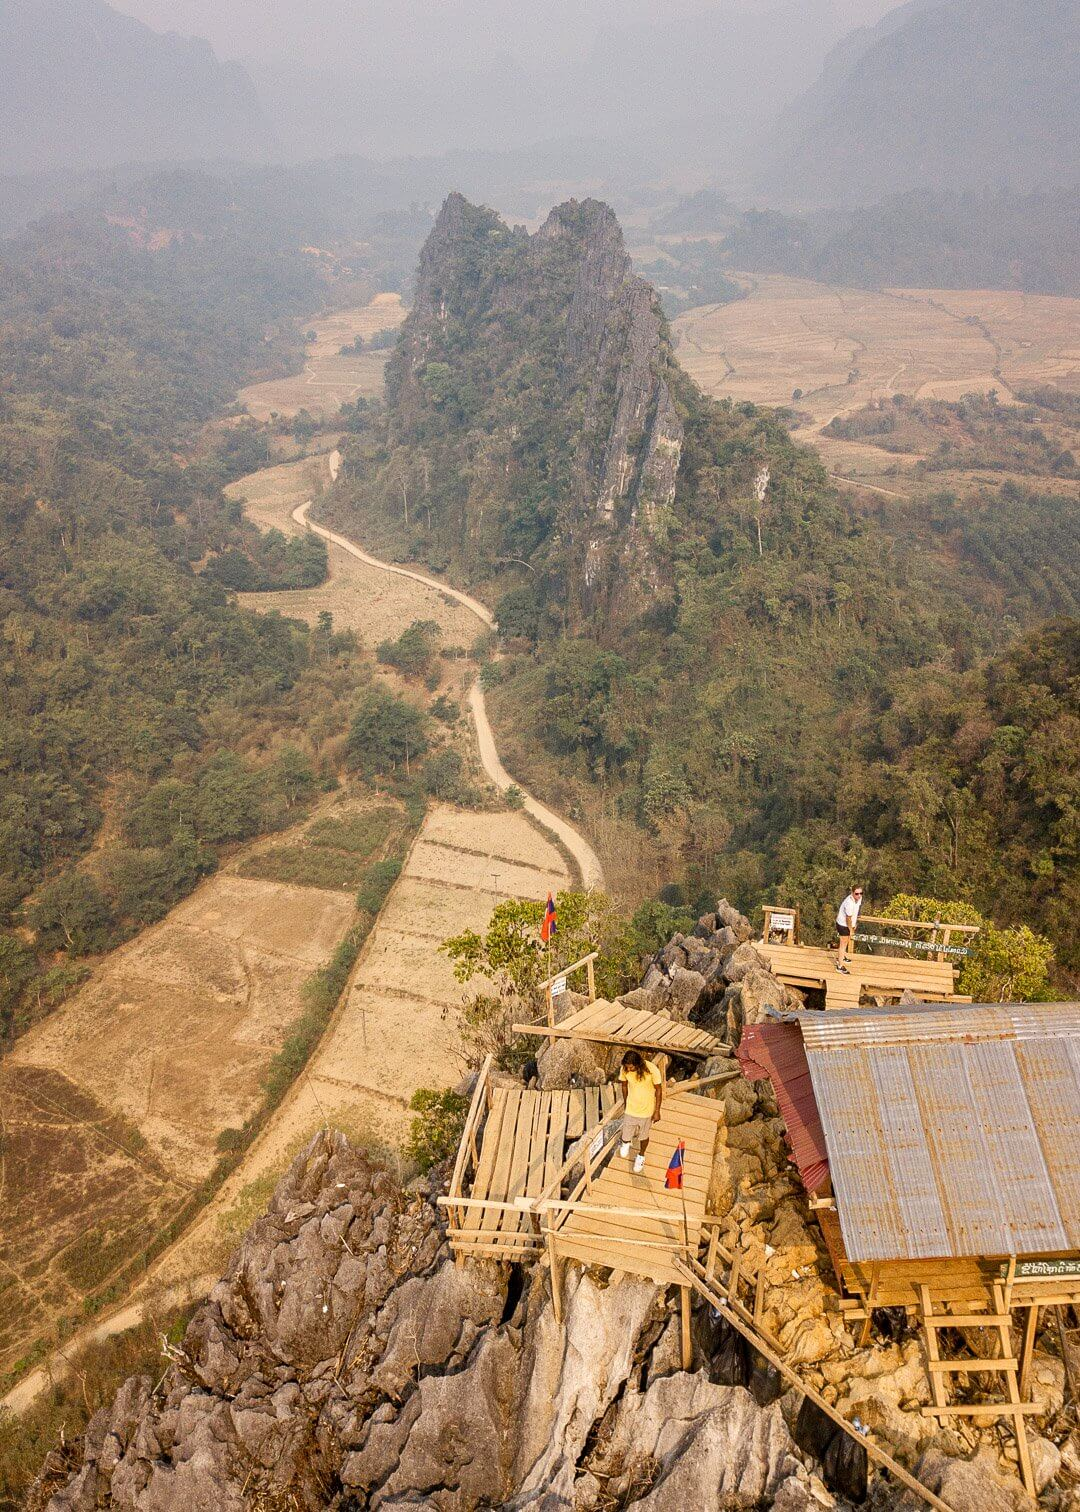 The viewing platforms at the top of the Nam Xay hike in Vang Vieng, Laos